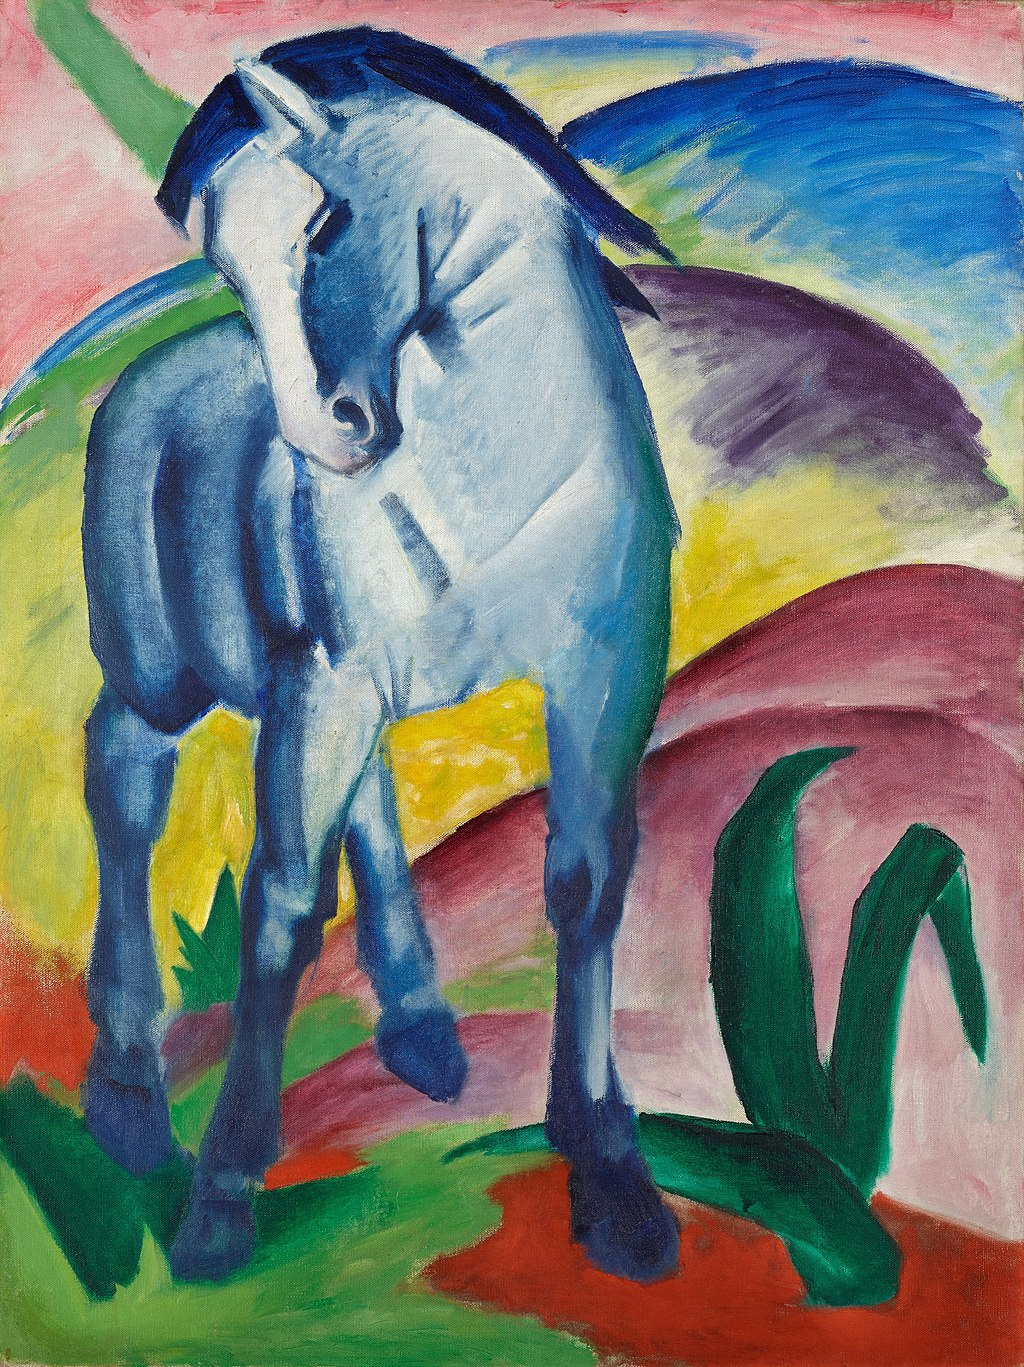 Marc, Franz - Blue Horse I - Google Art Project